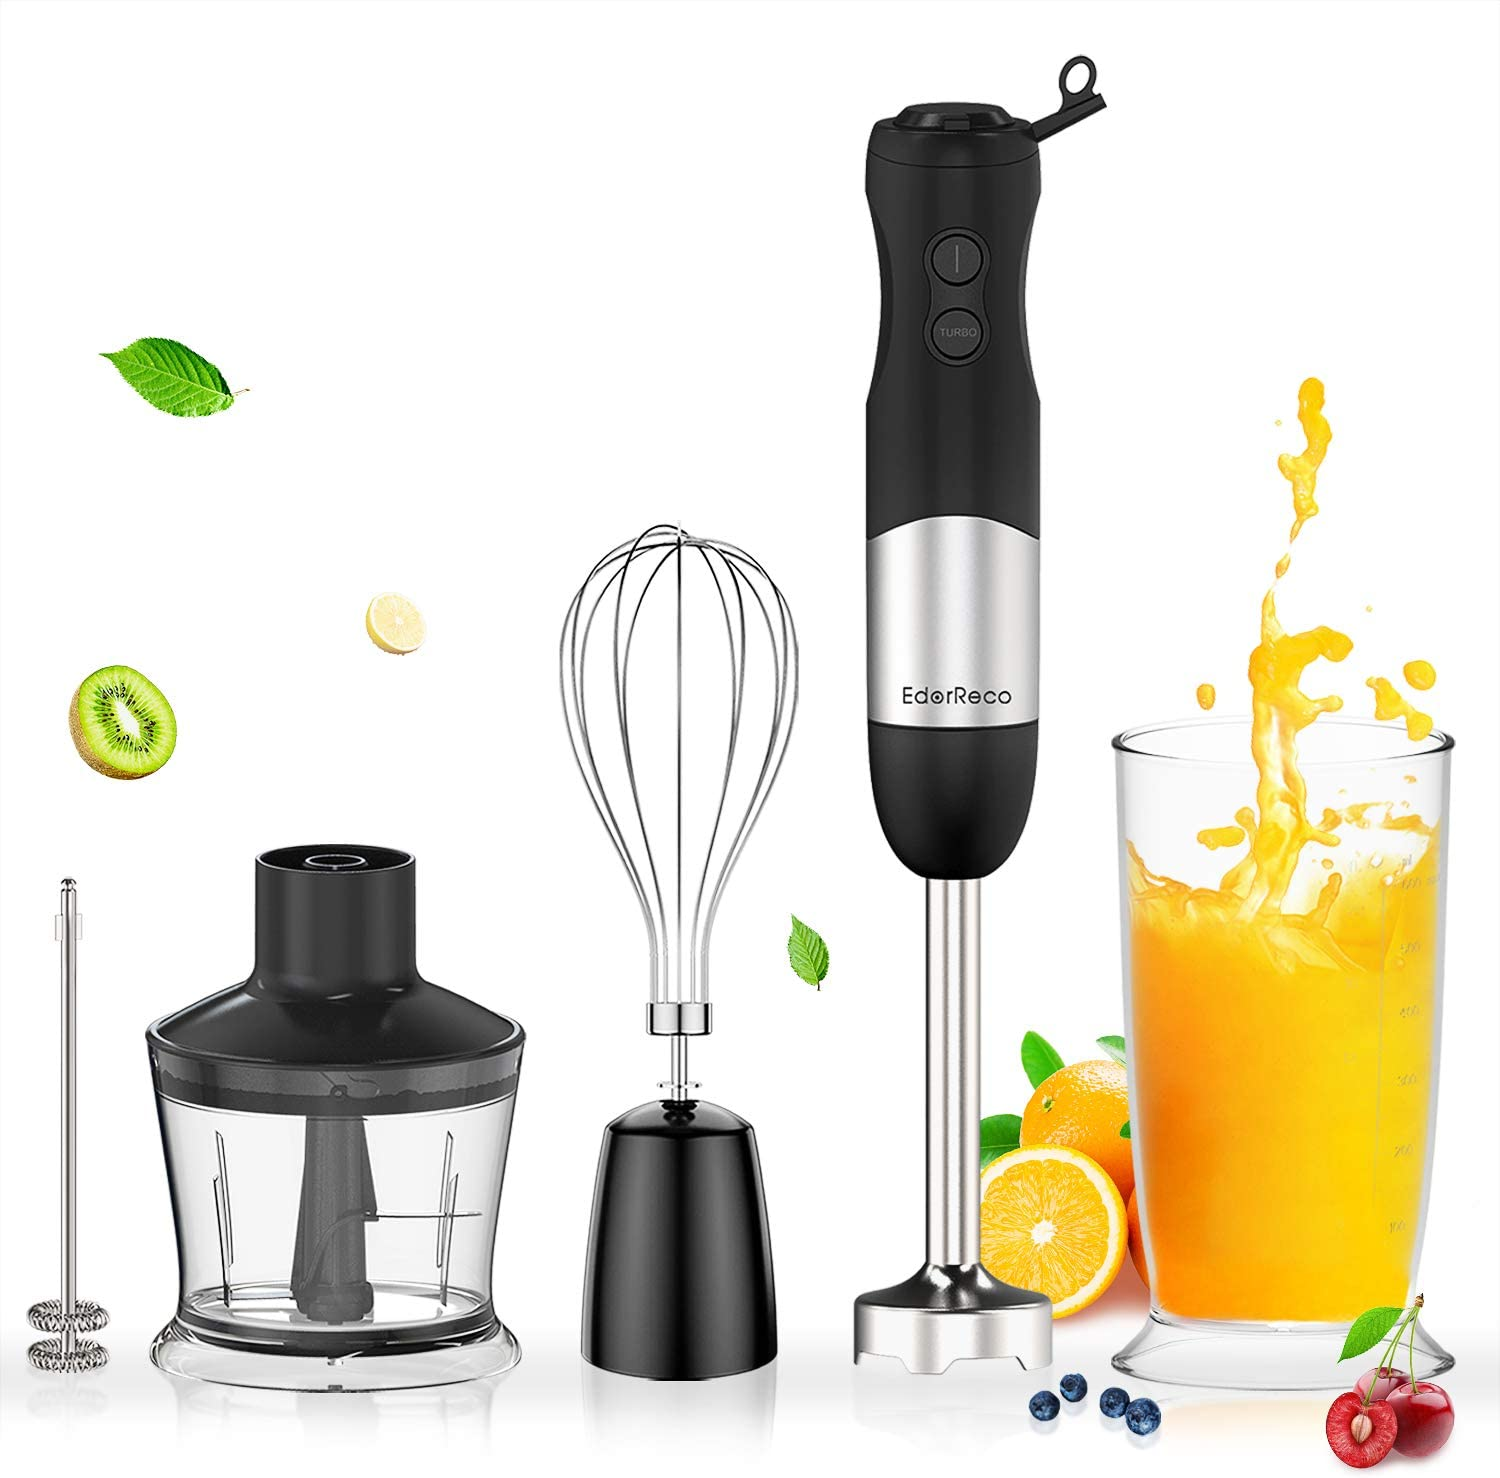 EdorReco 5-in-1 Immersion Hand Blender, 4-Point Stainless Steel Blade, 600W 12-Speed Motor, BPA-free & Dishwasher-safe Attachments: Milk Frother, Whisk, 20oz Measuring Cup & 17oz Chopper, Corded